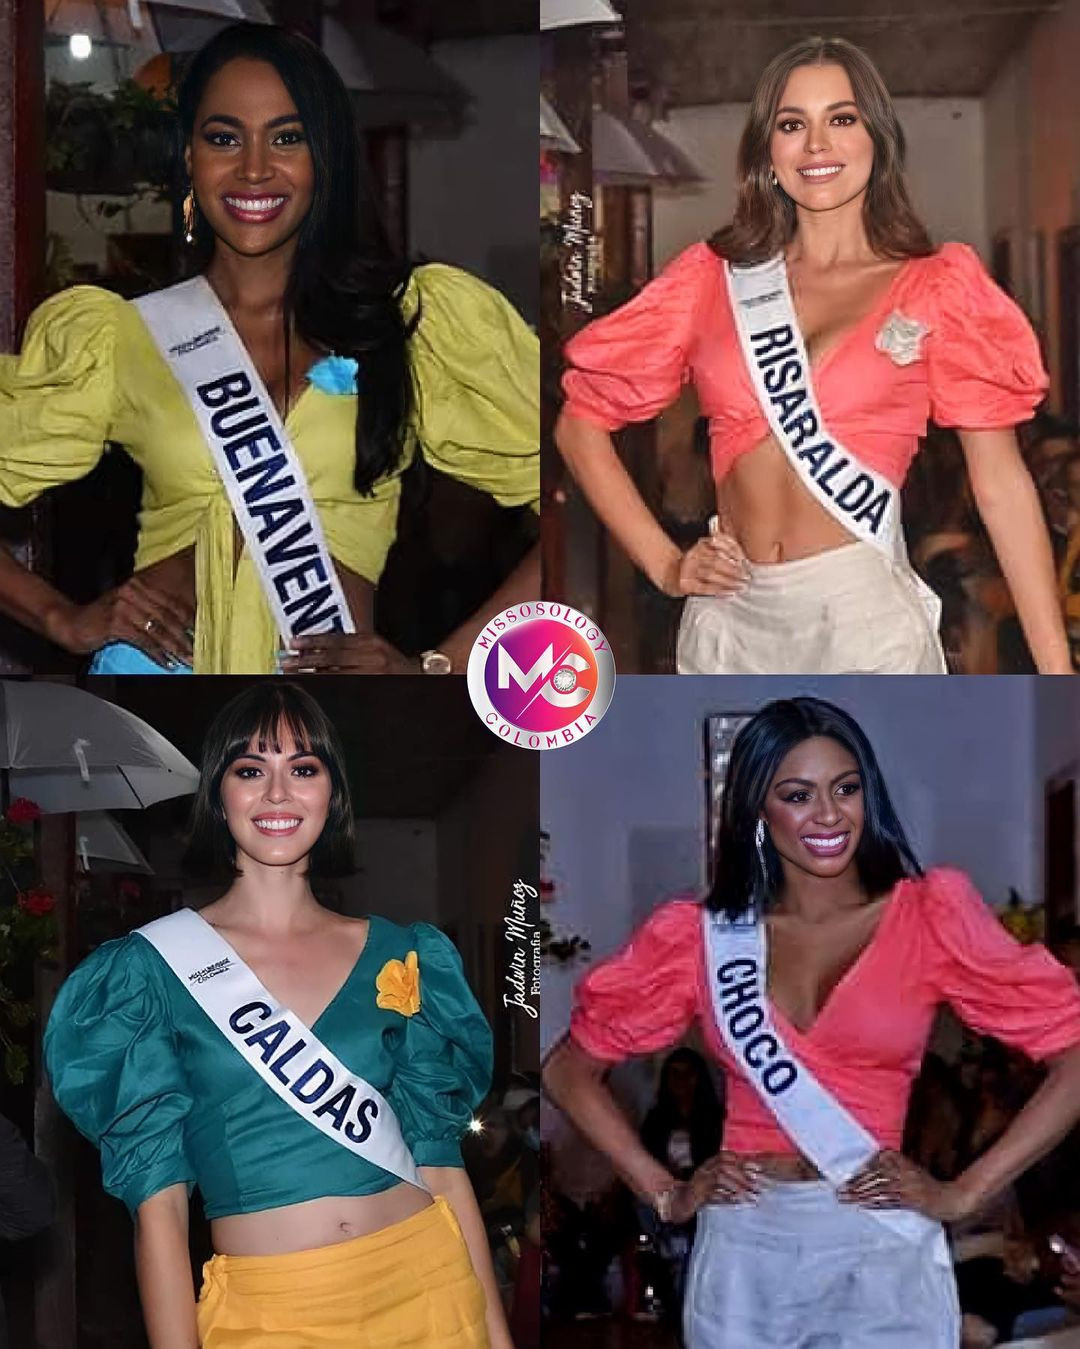 candidatas a miss universe colombia 2021. final: 18 oct. sede: neiva. - Página 25 5fMO1R